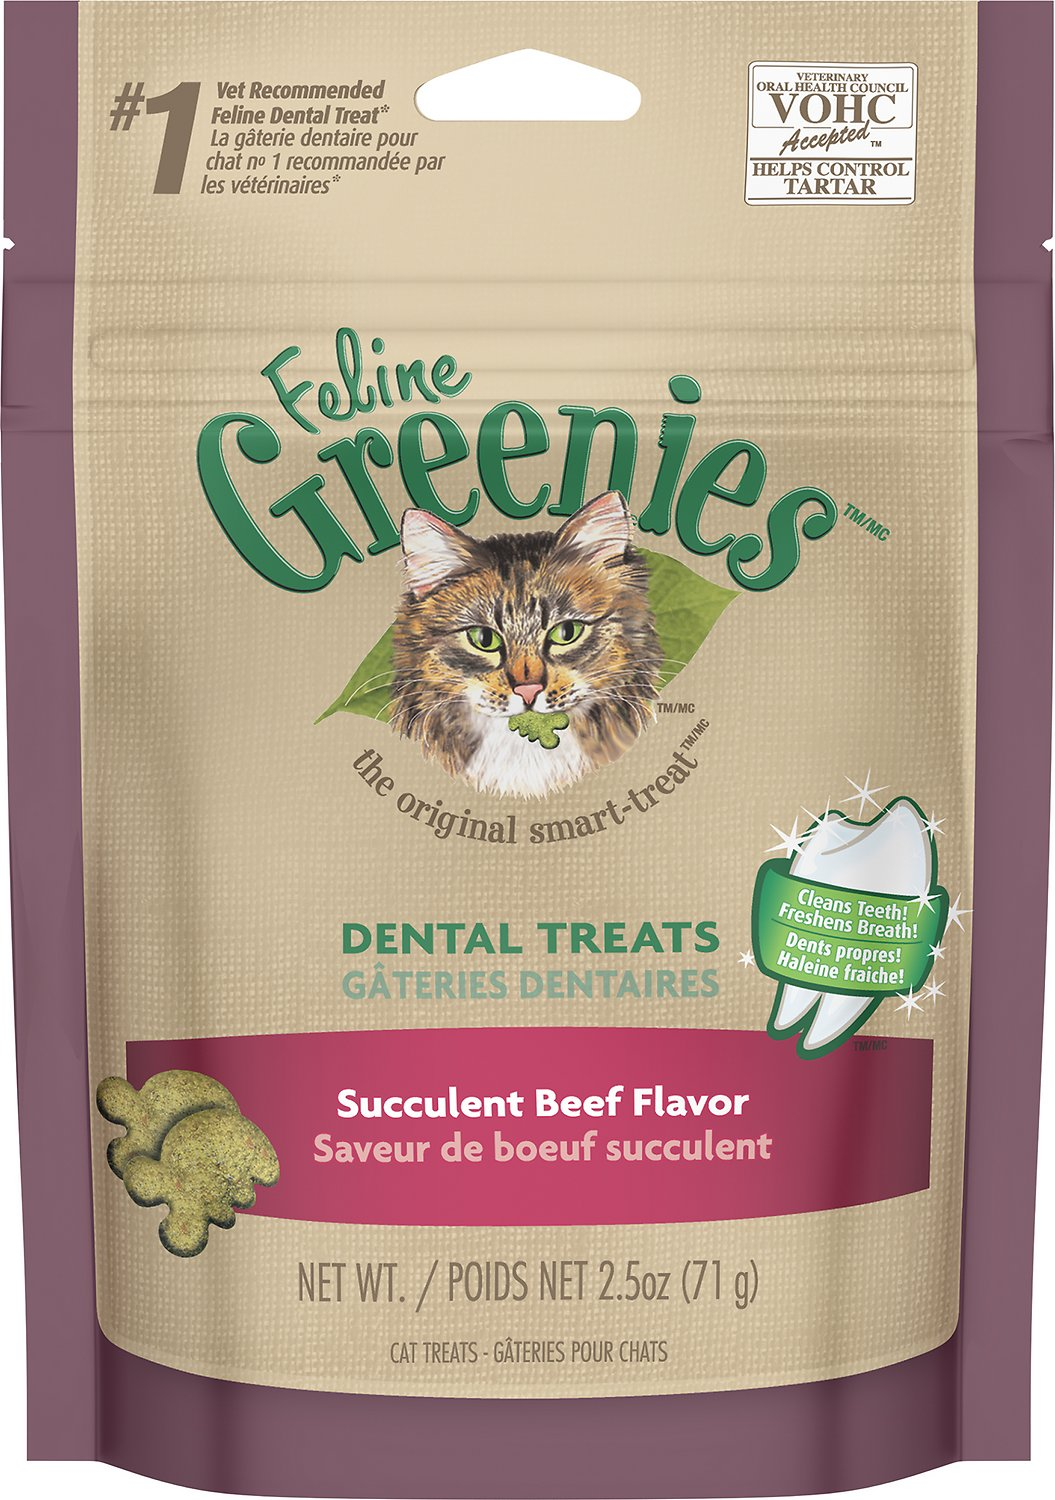 Feline Greenies Dental Treats Succulent Beef Flavor Cat Treats, 2.5-oz bag